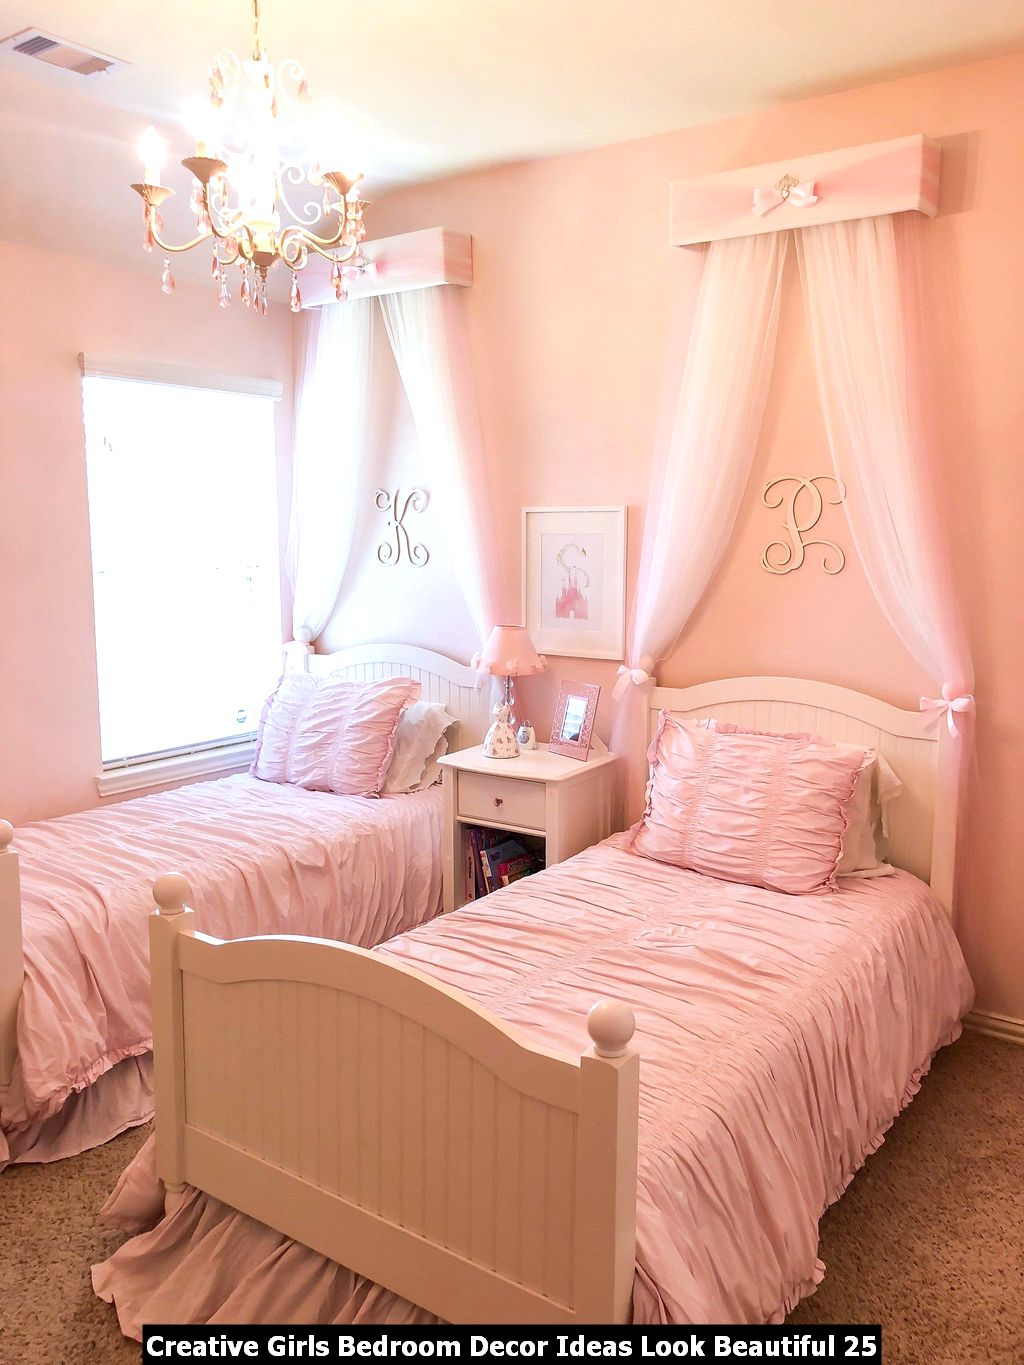 Creative Girls Bedroom Decor Ideas Look Beautiful 25